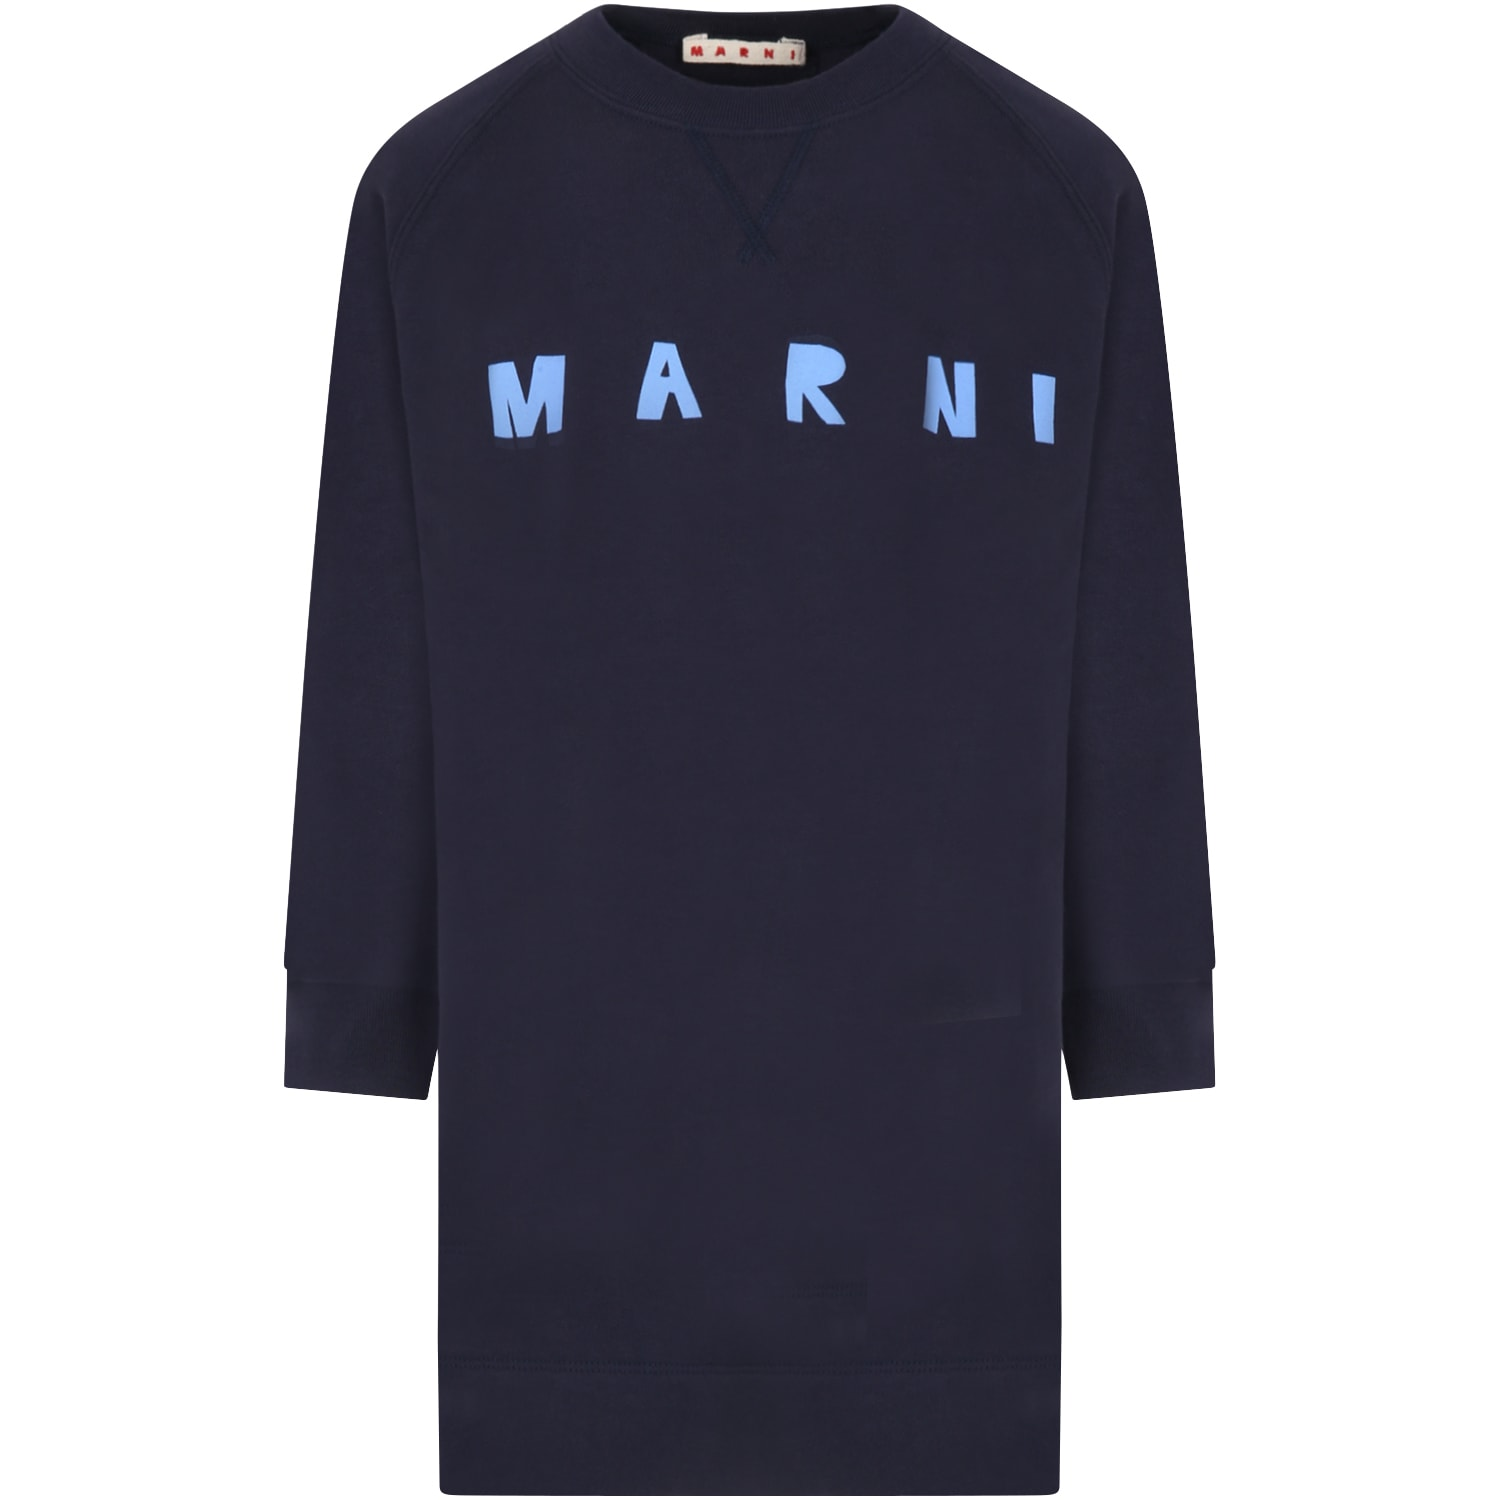 Marni BLUE DRESS FOR GIRL WITH LOGO